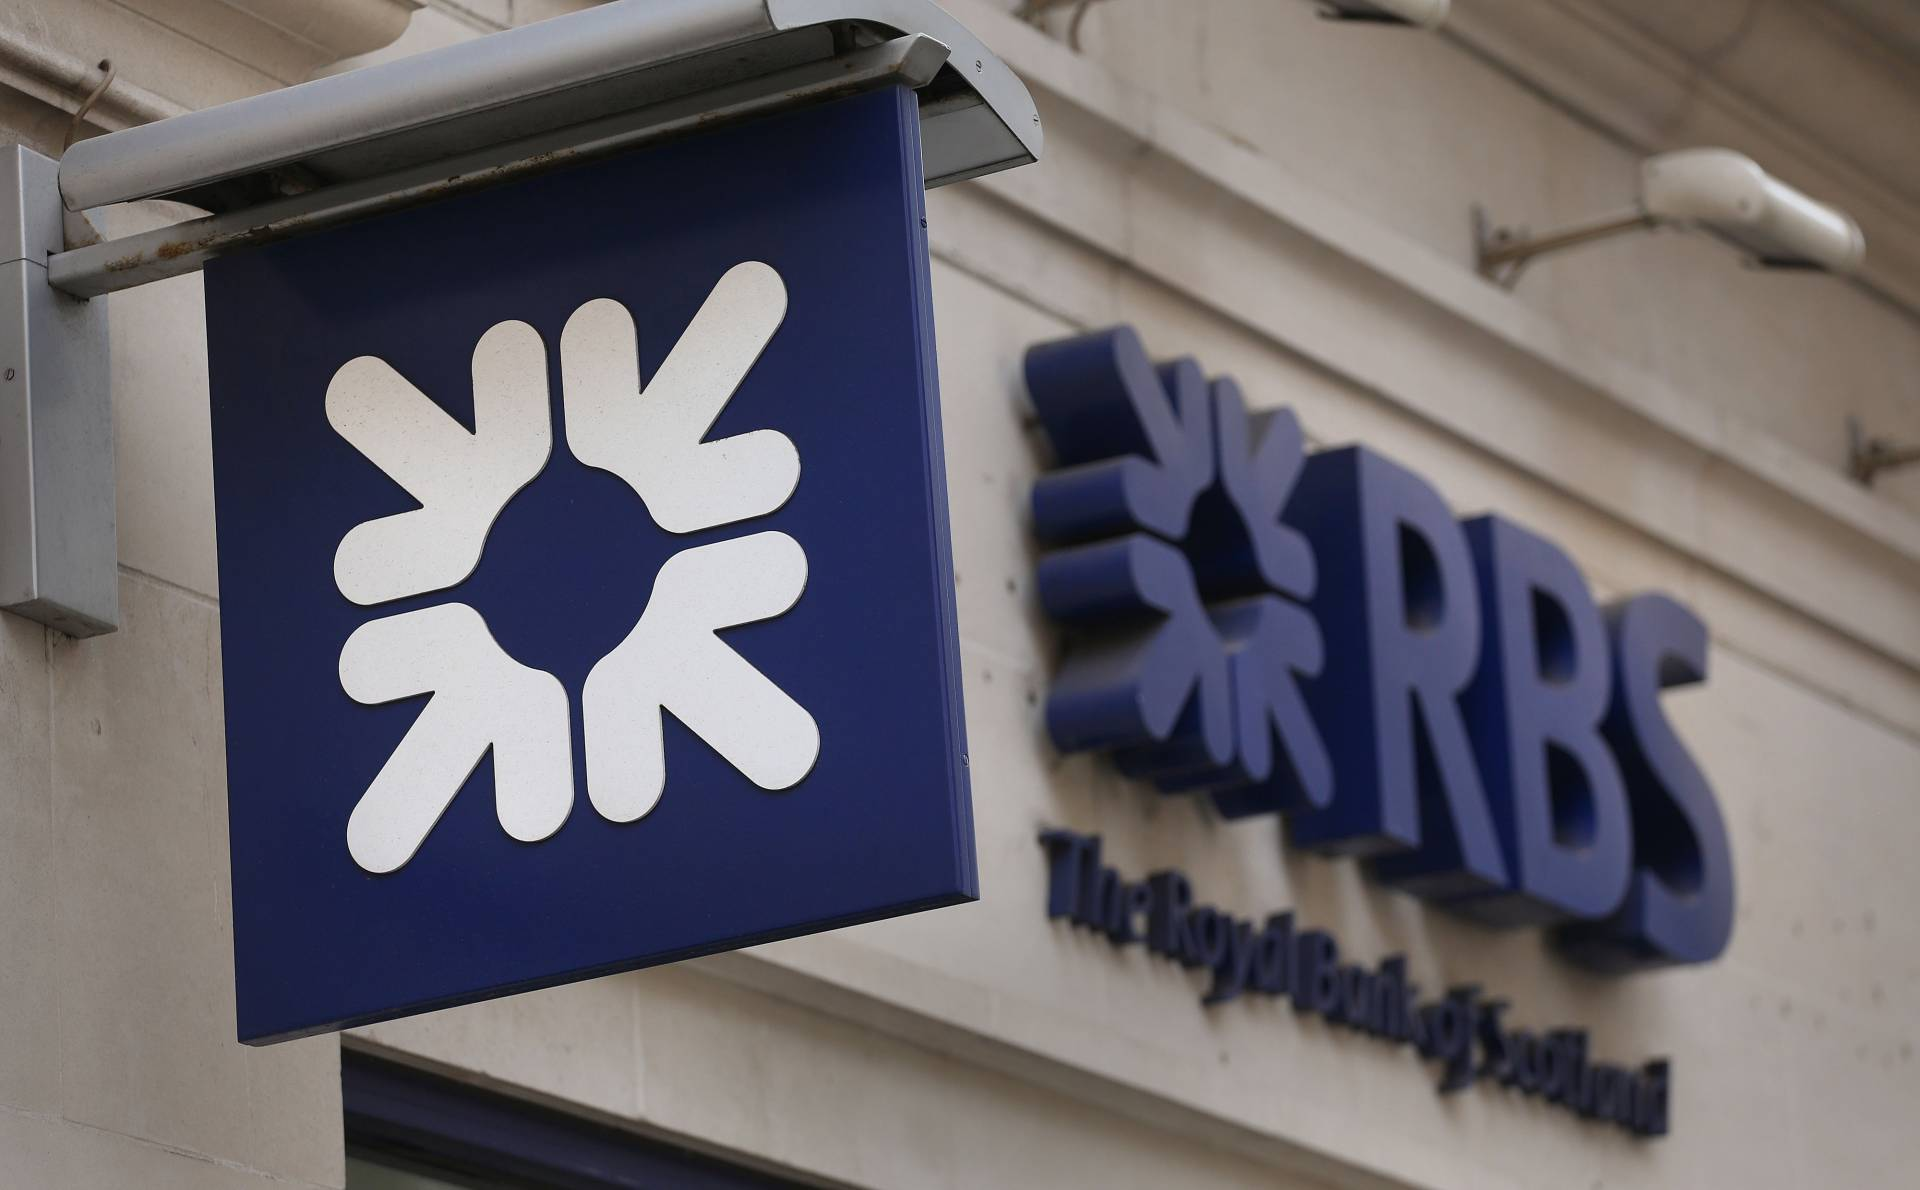 Royal Bank of Scotland branches in Laurencekirk and Brechin will shut later this year.